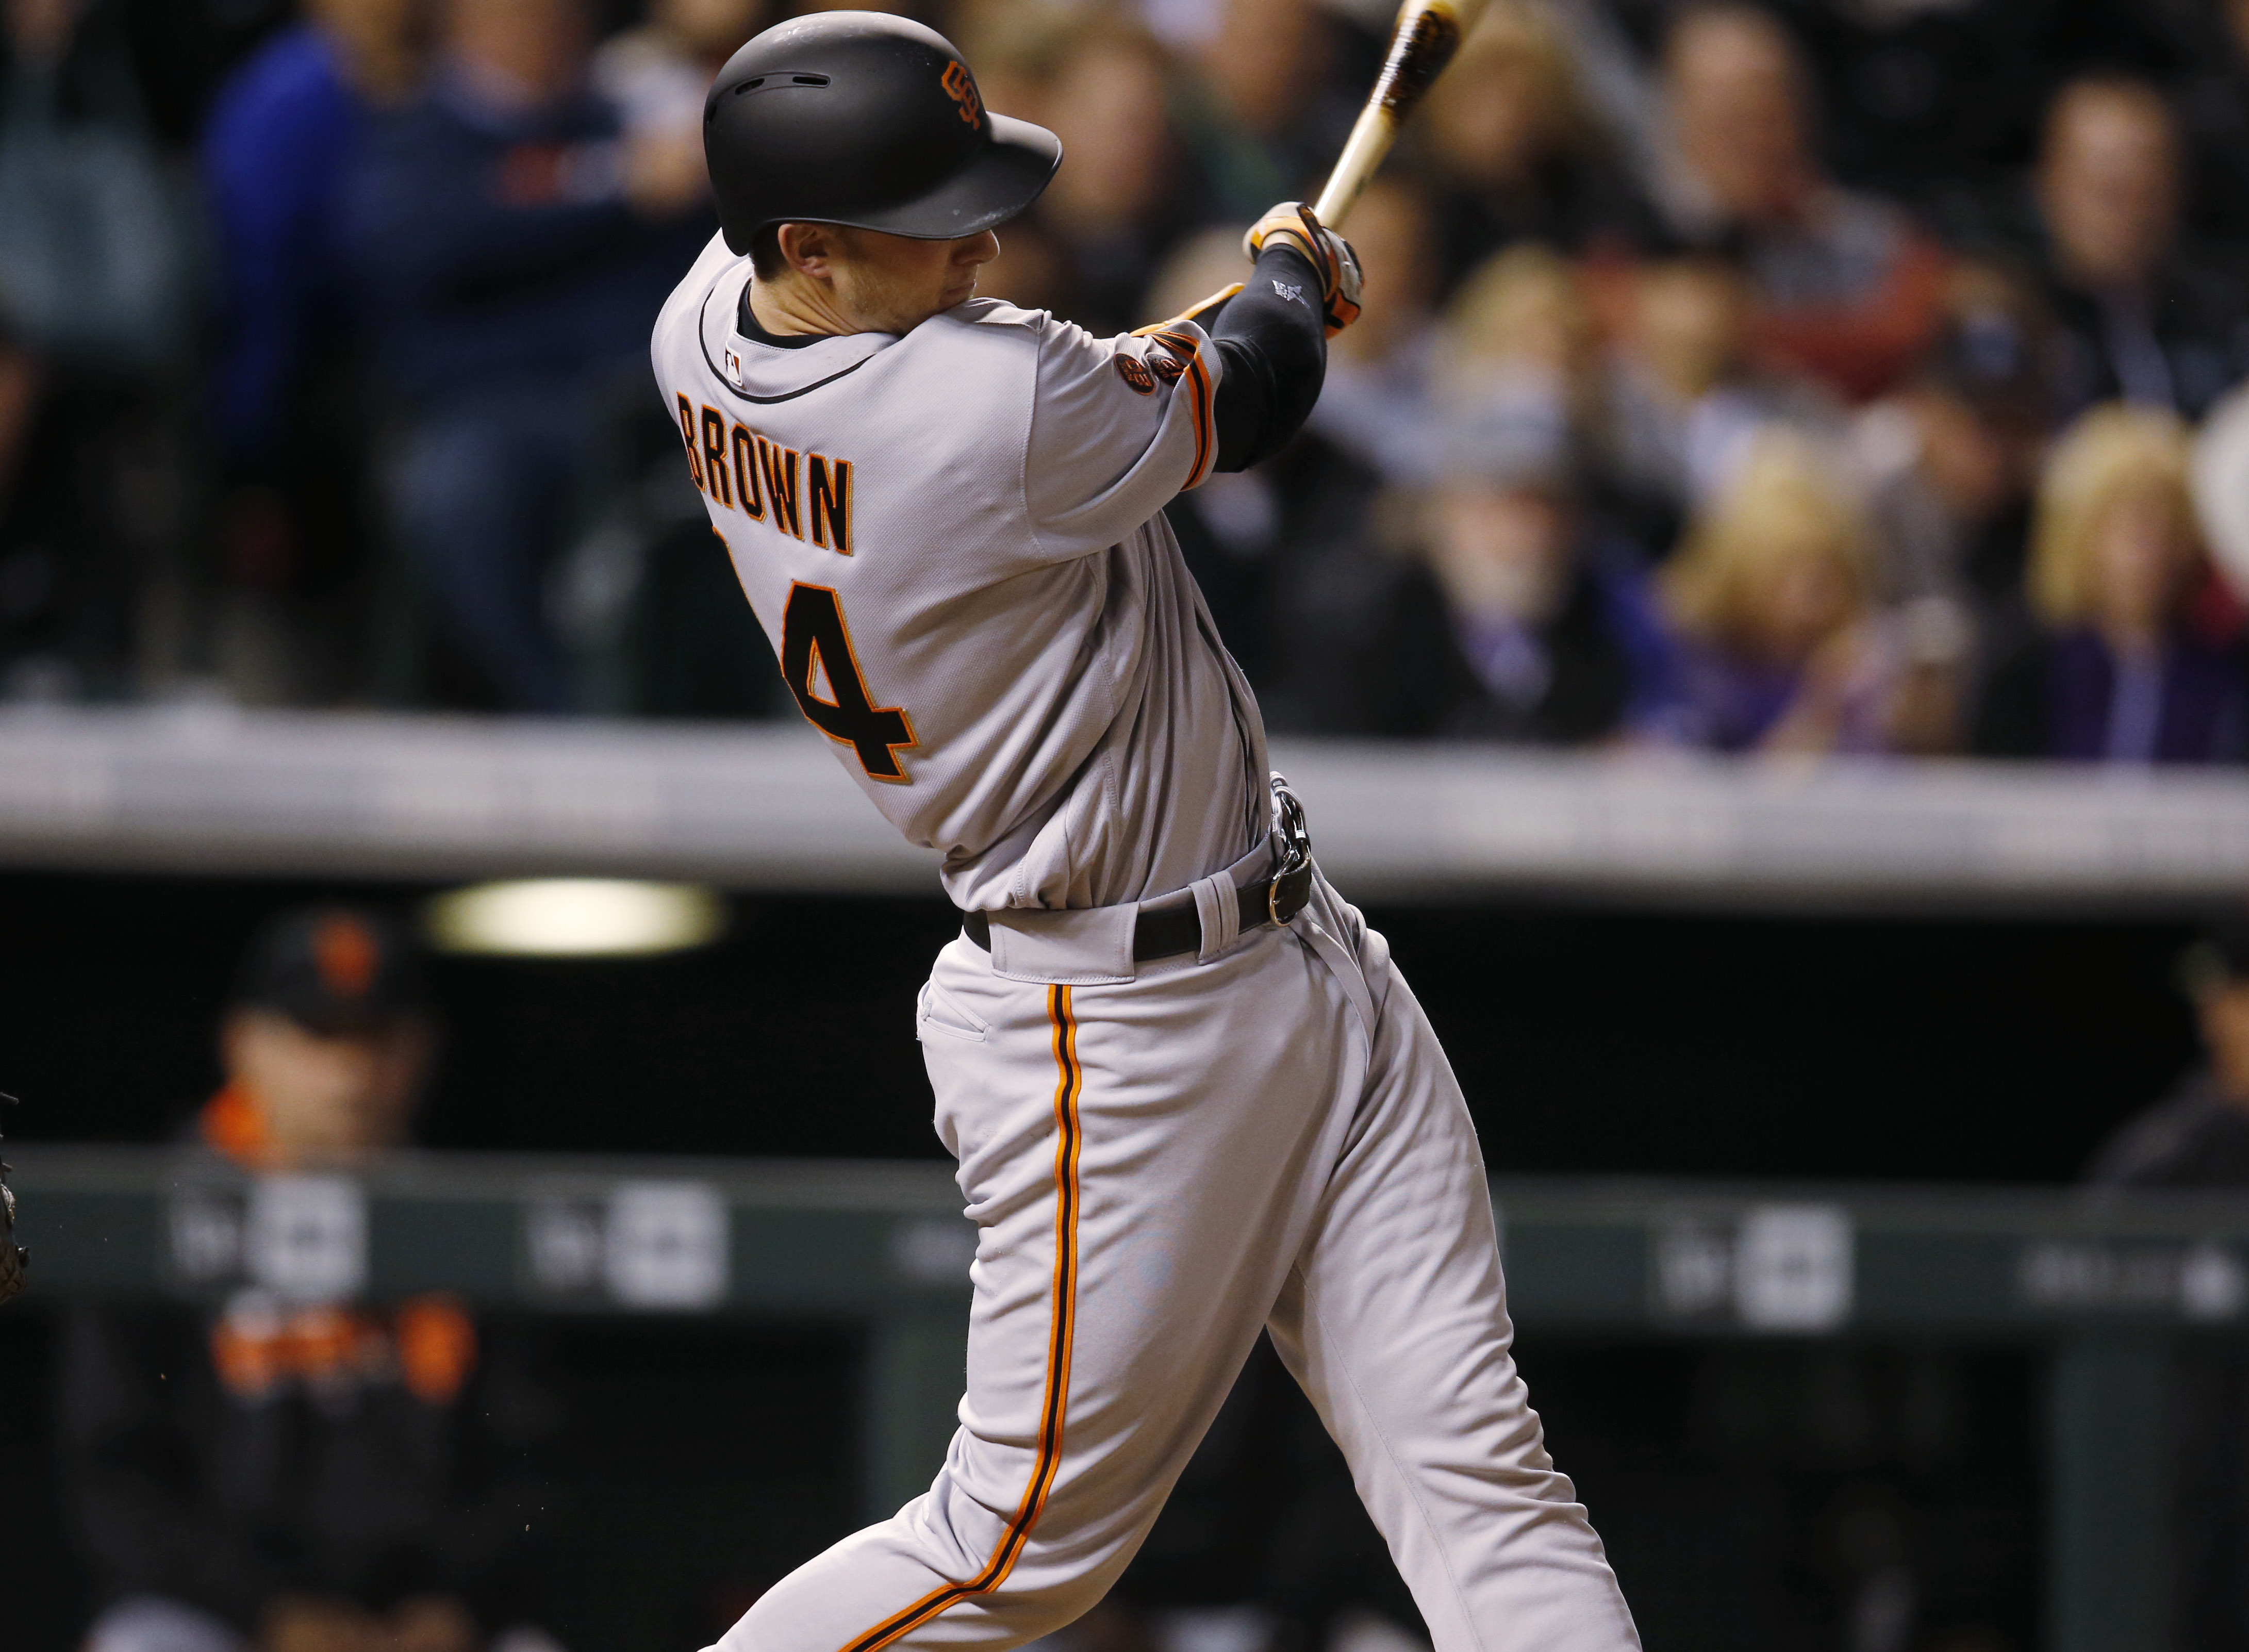 San Francisco Giants' Trevor Brown follows through on a two-run home run off Colorado Rockies starting pitcher Tyler Chatwood during the sixth inning of a baseball game Tuesday, April 12, 2016, in Denver. The Giants won 7-2. (AP Photo/David Zalubowski)